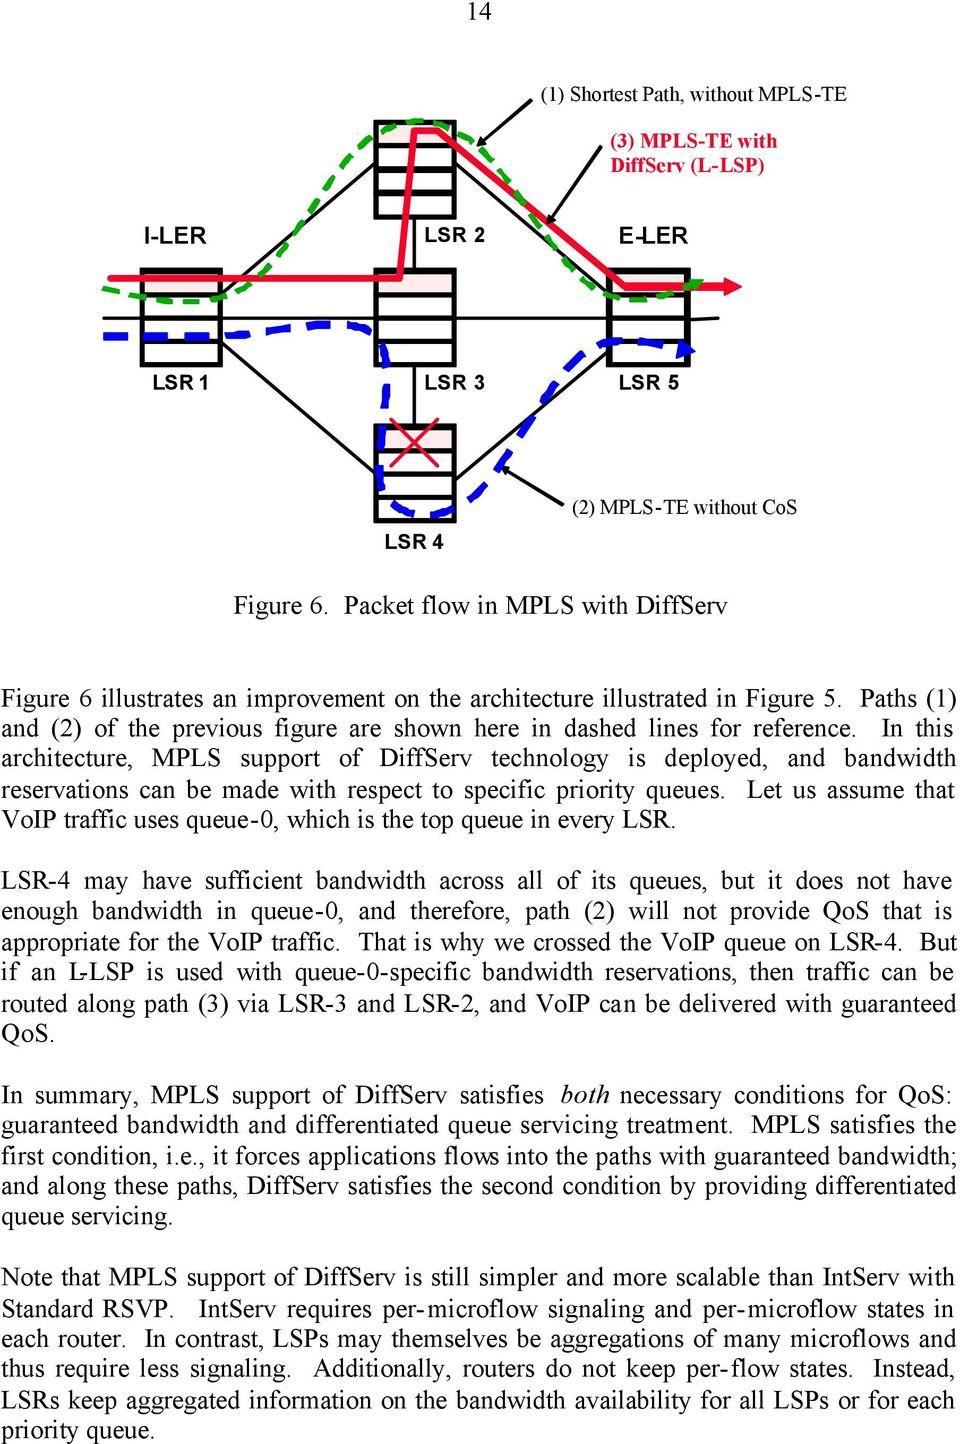 QoS Support in MPLS Networks - PDF